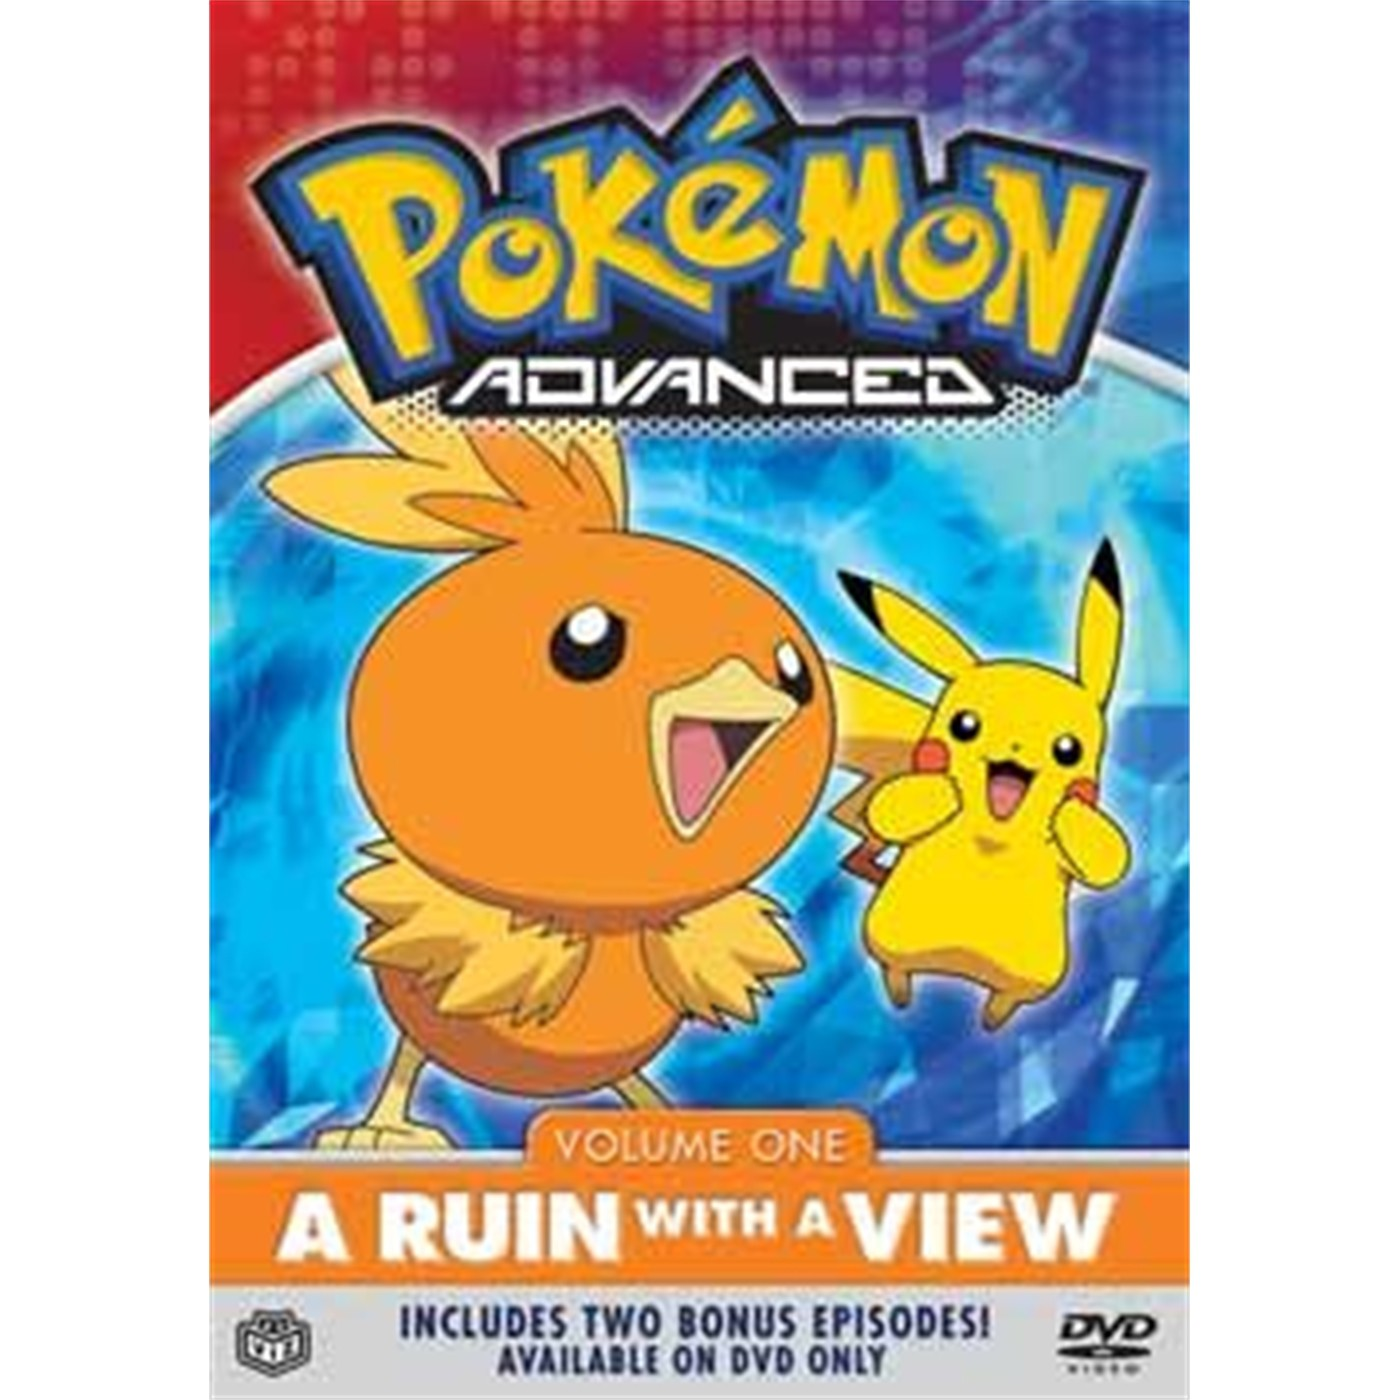 POKEMON ADVANCED (DVD), VOLUME 1